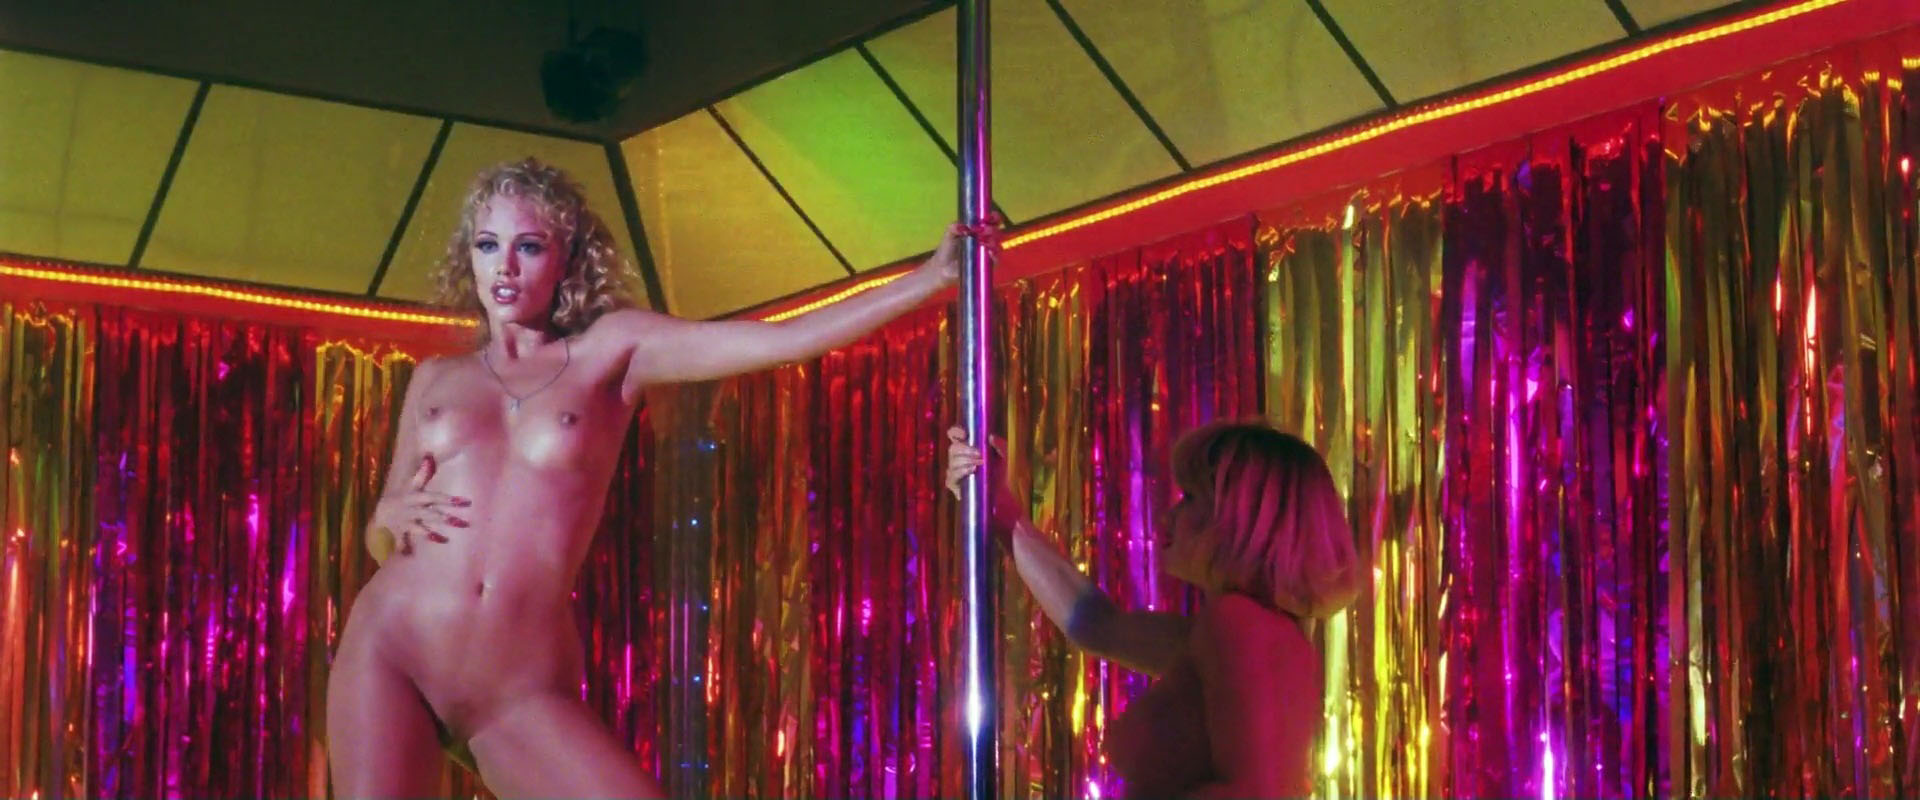 Elizabeth Berkley, Rena Riffel – Showgirls (1995) HD 1080p